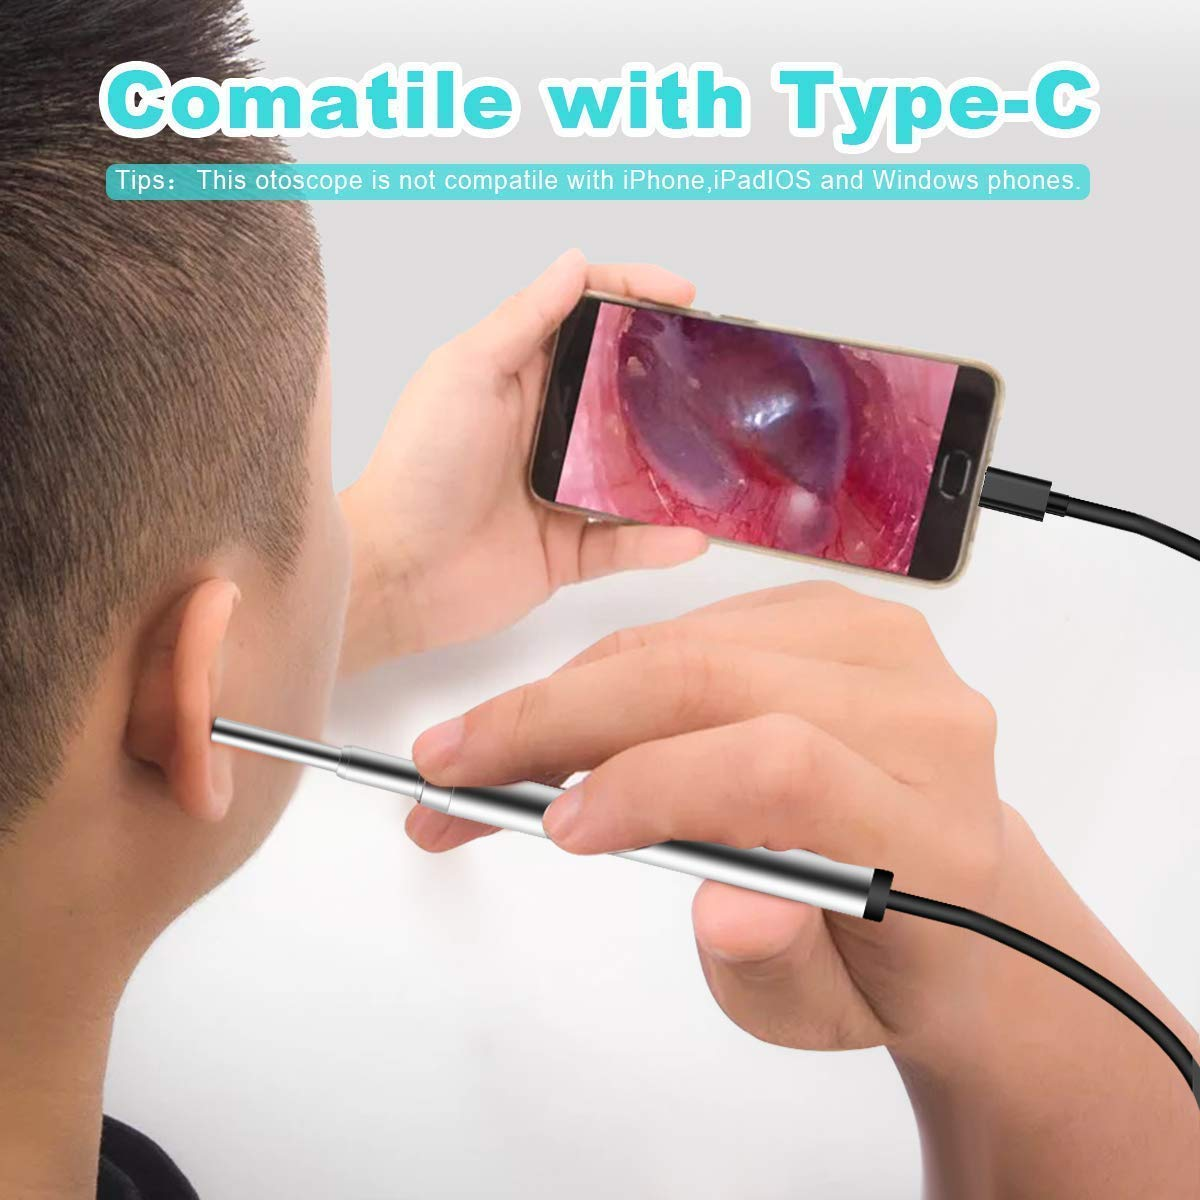 3 9MM Mini Medical Endoscope Camera  Waterproof USB Endoscope Inspection Camera for OTG Android Phone PC Ear Nose Borescope